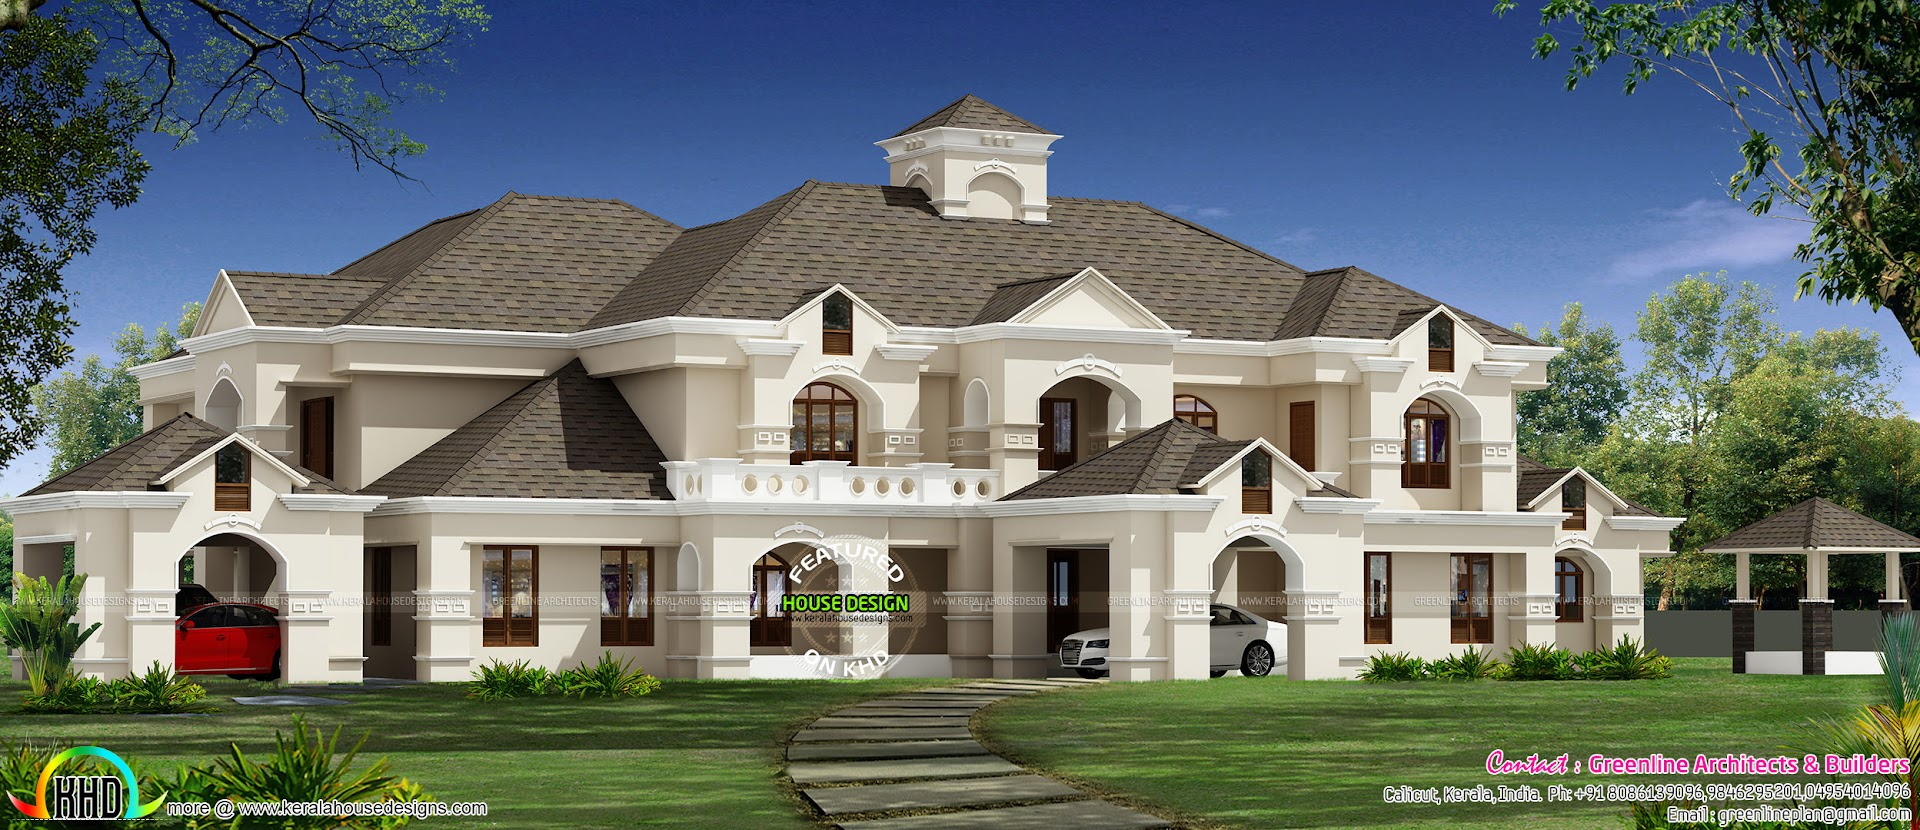 911 sq yd luxury colonial house architecture kerala home for Colonial luxury house plans